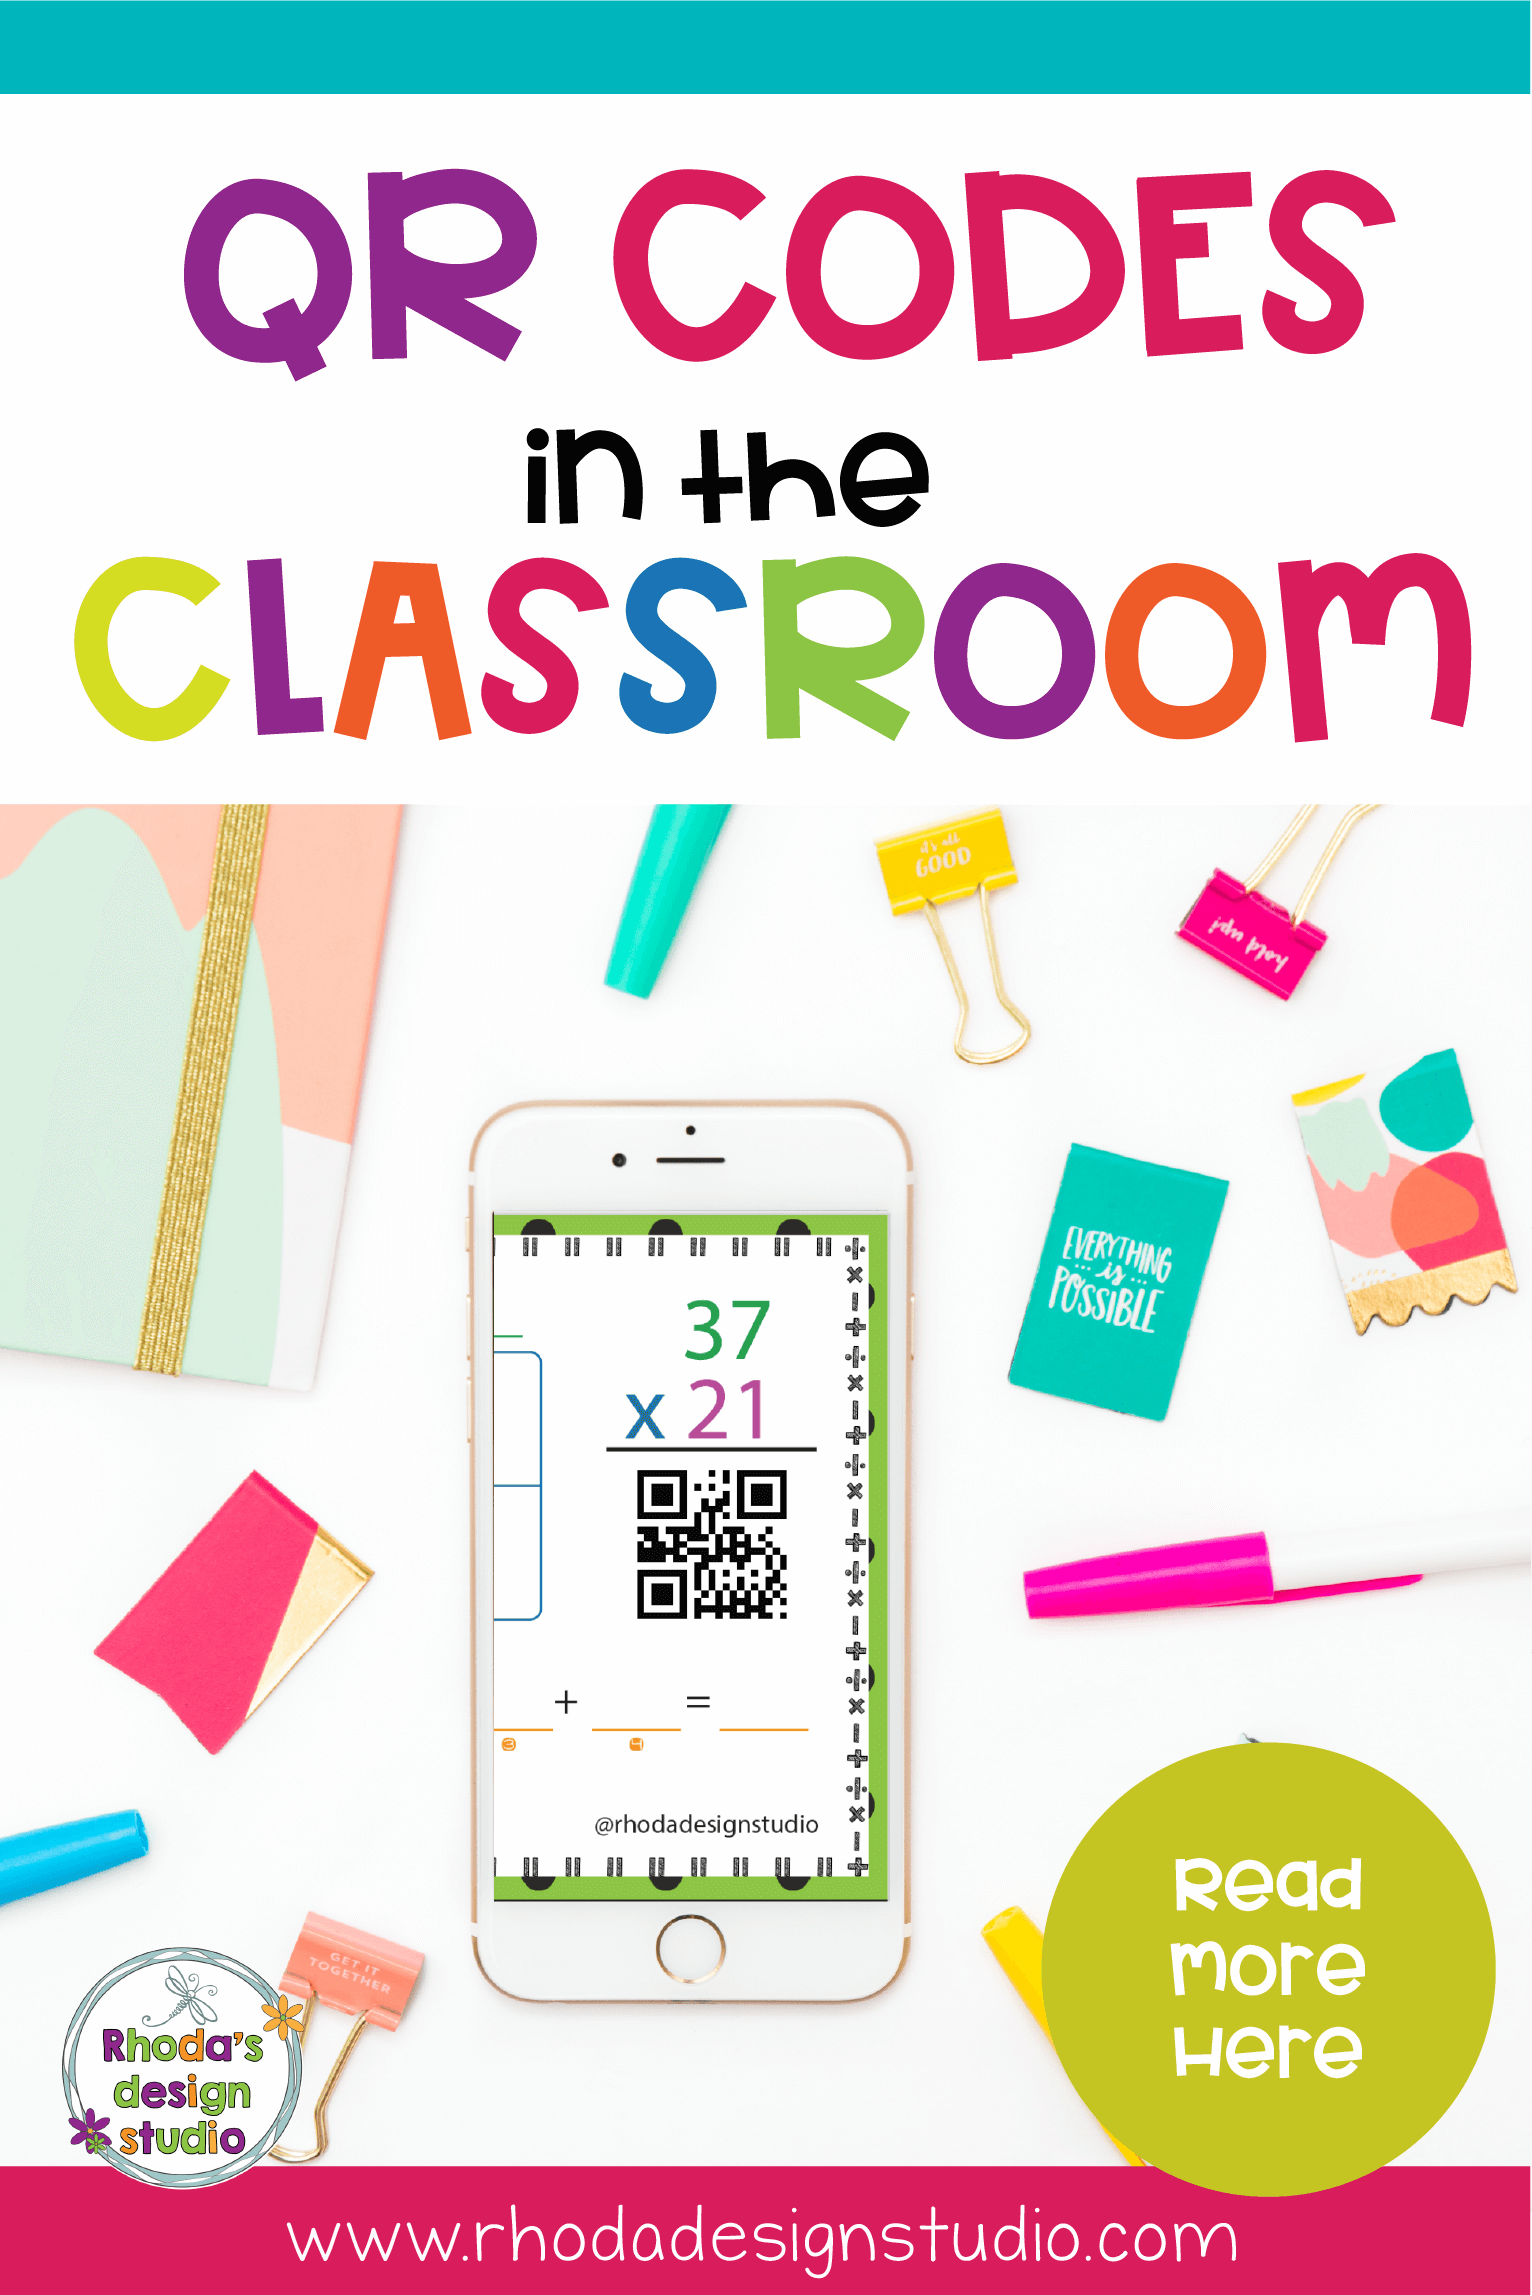 QR Codes in the classroom are great for math, reading, science, and other activities. These 5 ways to use QR Codes in the classroom help teachers save time and help with classroom management.